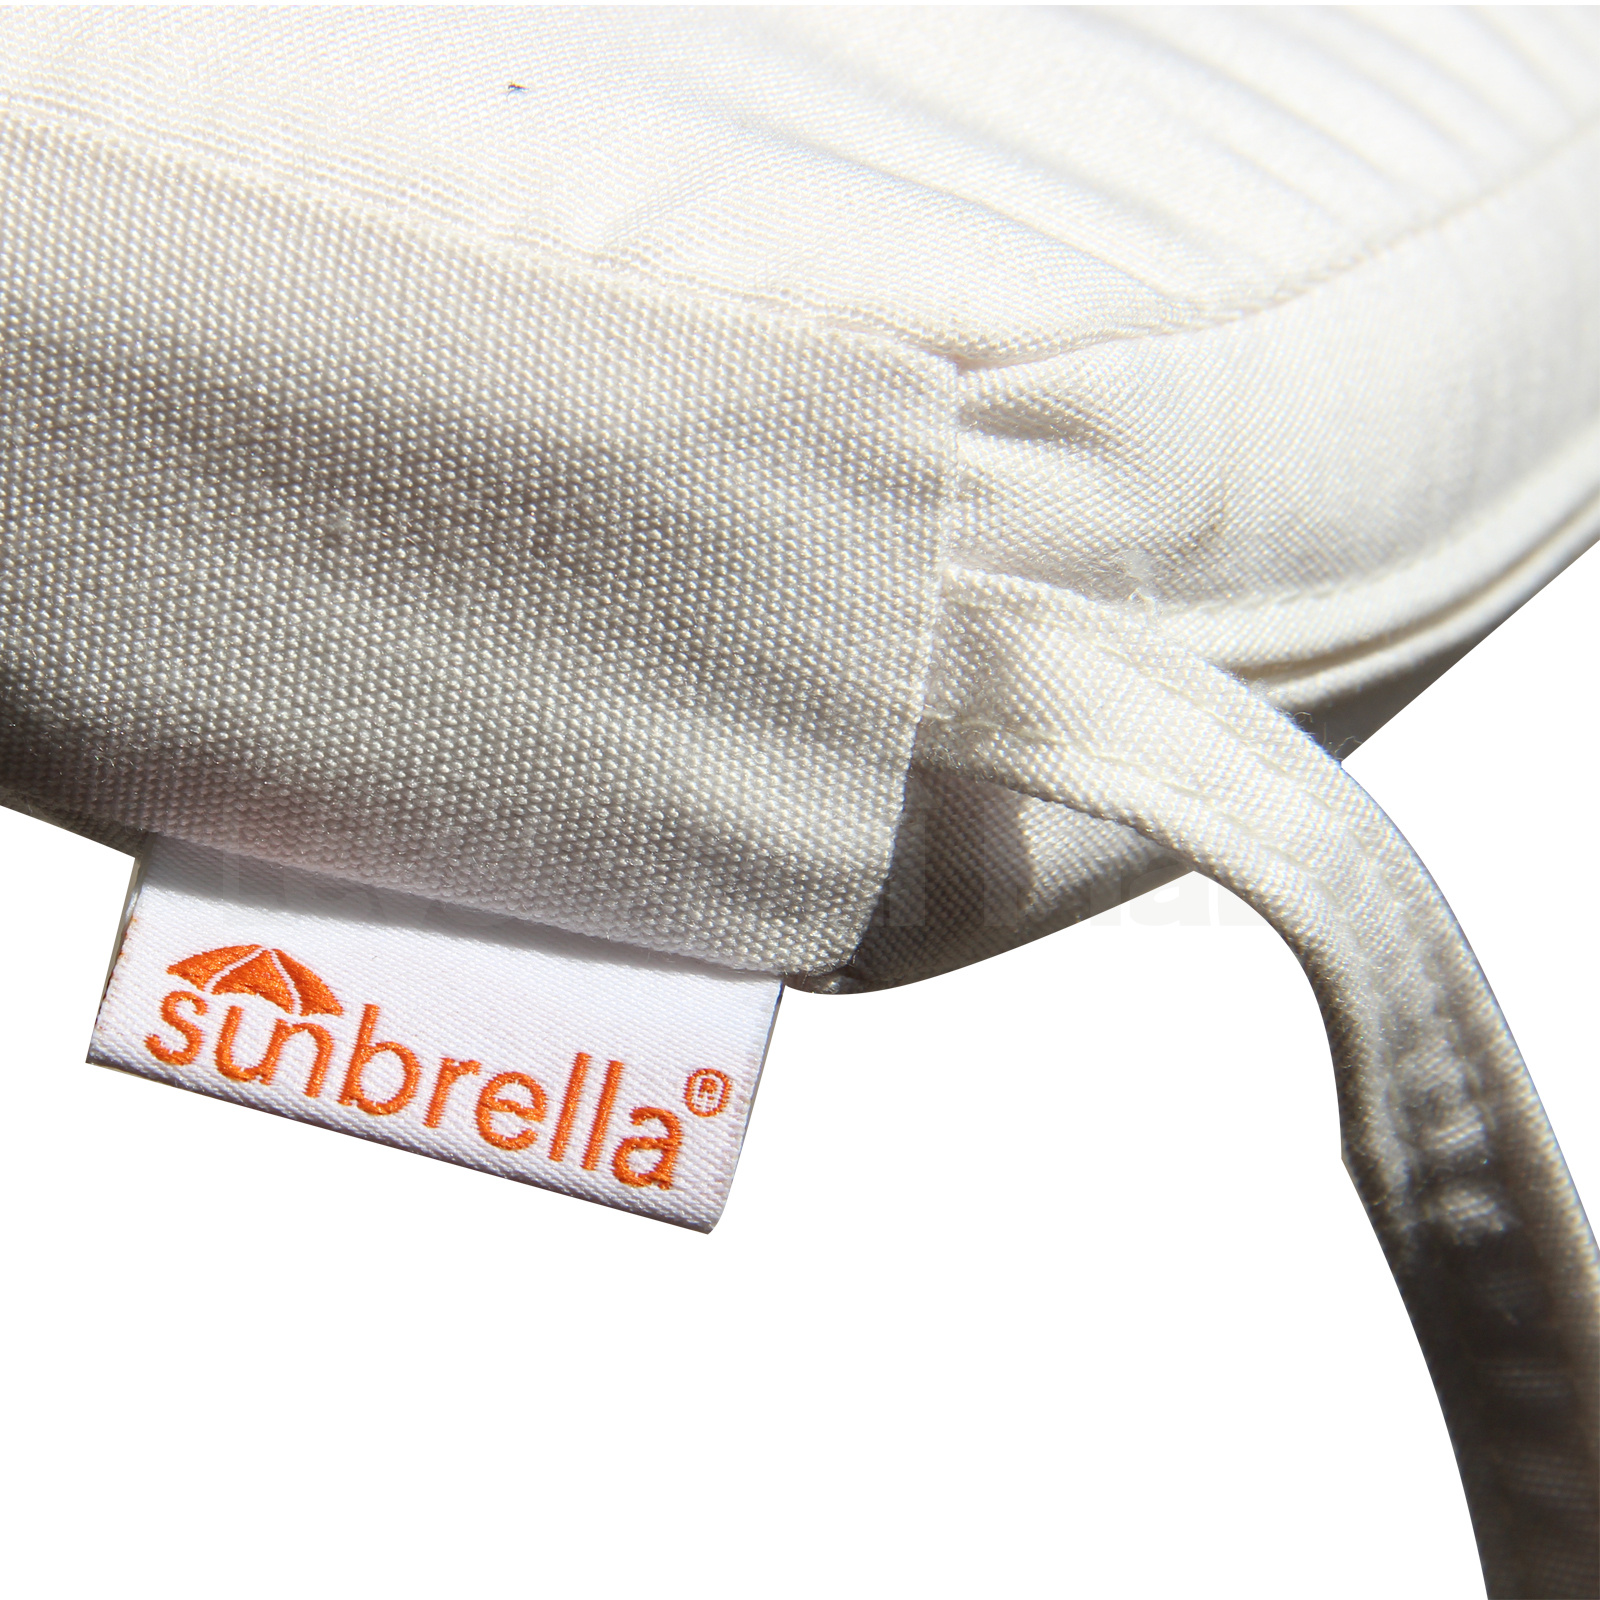 new sunbrella outdoor chair cushion tie on patio seat pad